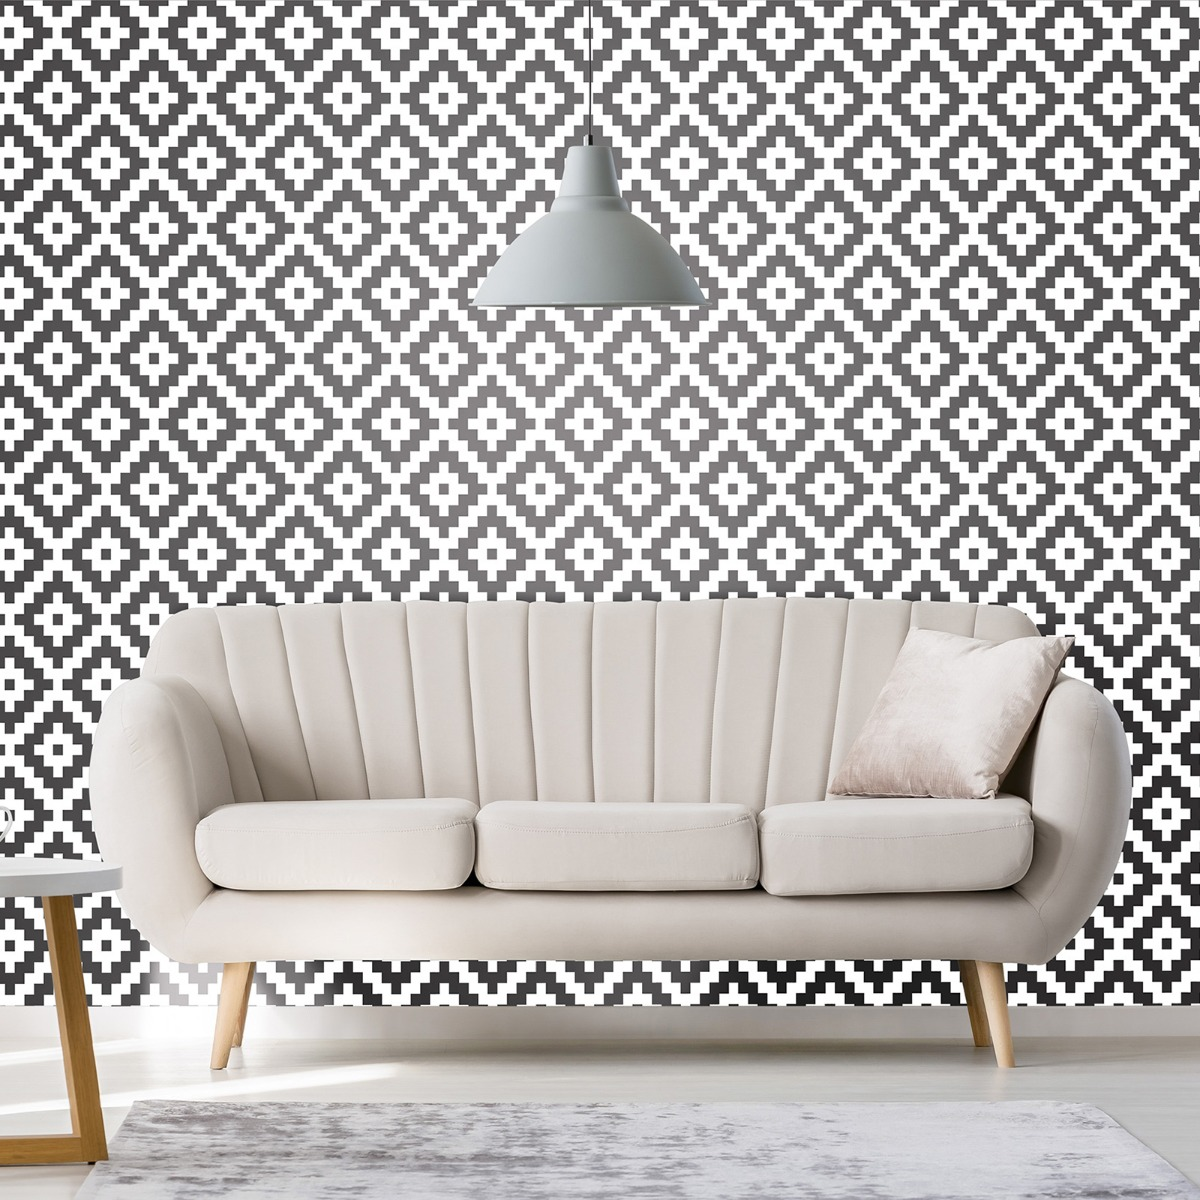 Aztec Diamond Geo Wallpaper Black / White P+S 18194-10